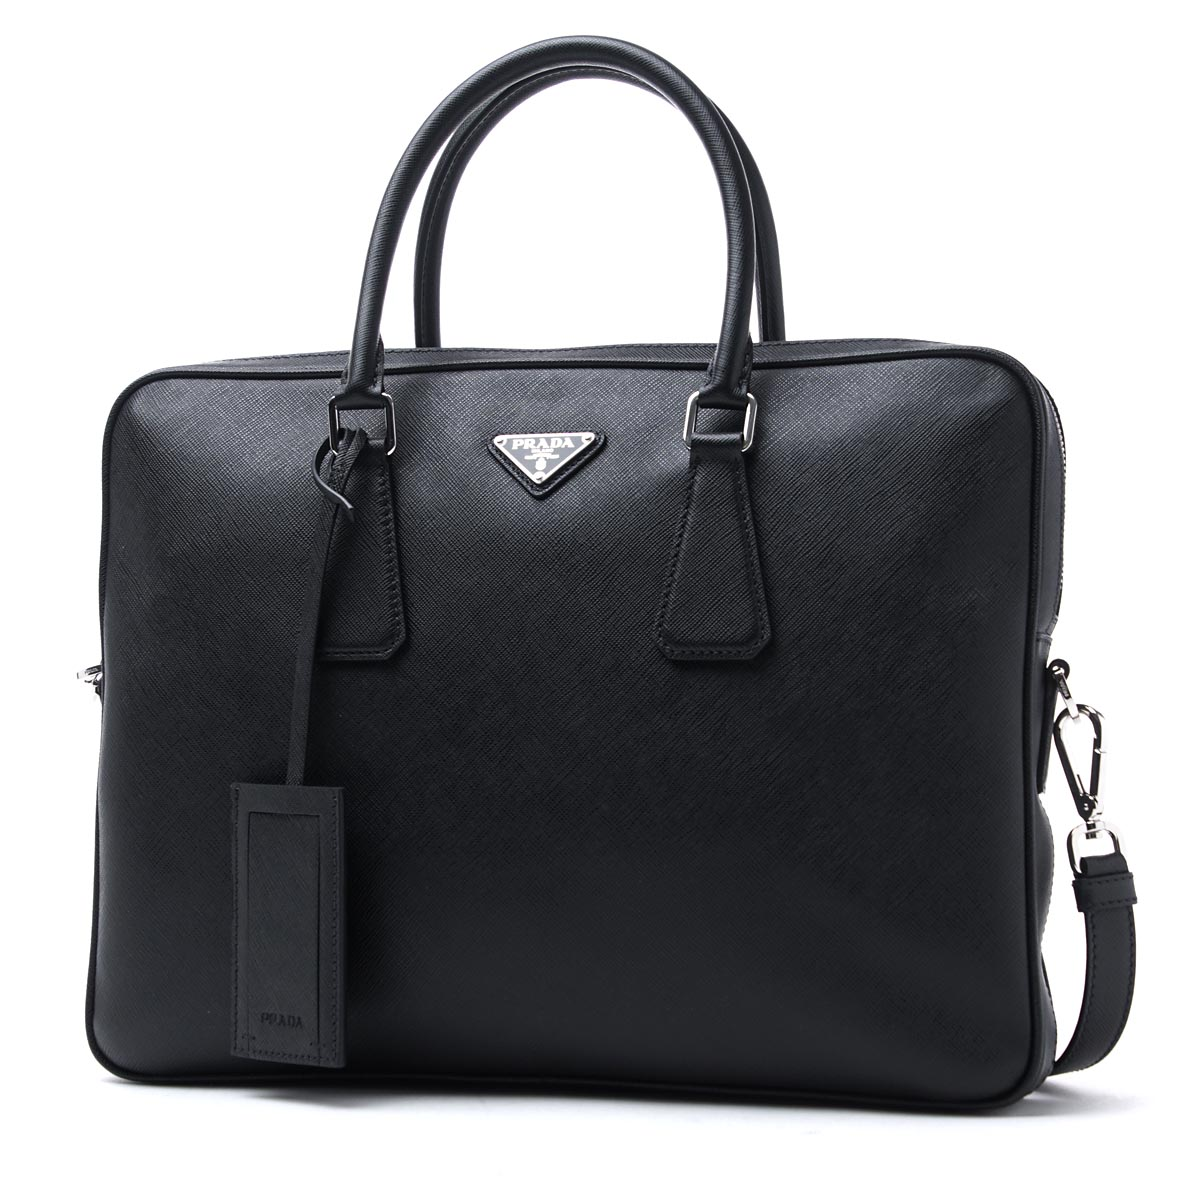 Prada Mens Card Holder | Prada Mens Briefcase Sale | Prada Briefcase